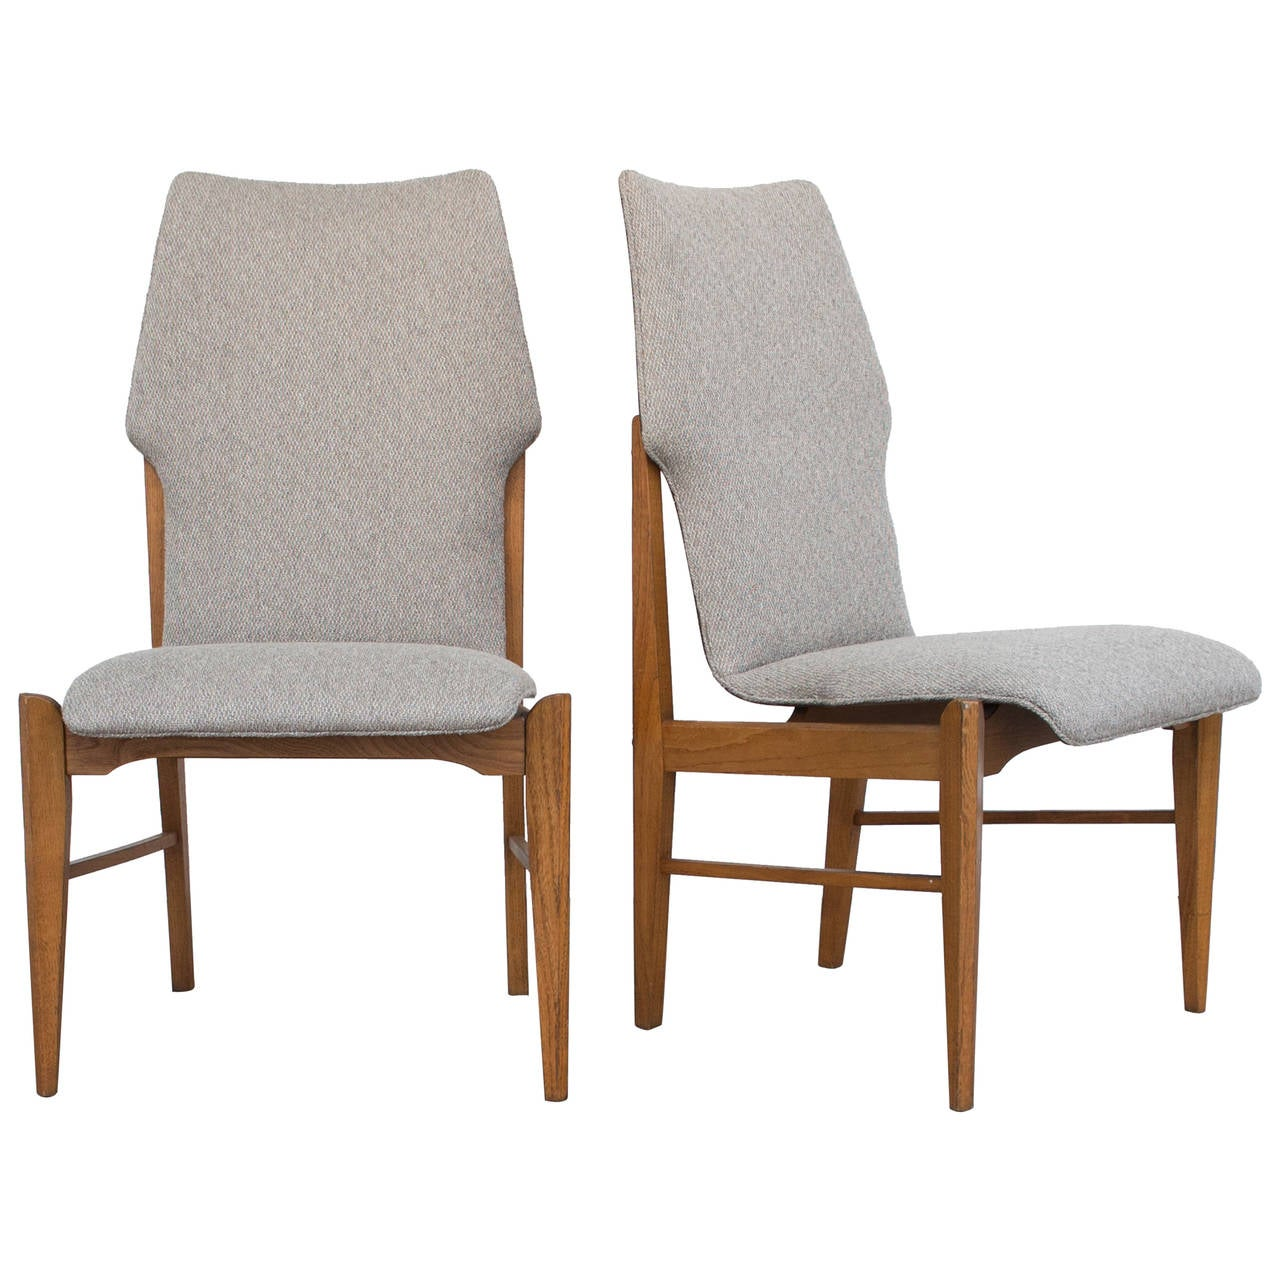 Four kodawood danish modern dining chairs at 1stdibs Danish modern furniture